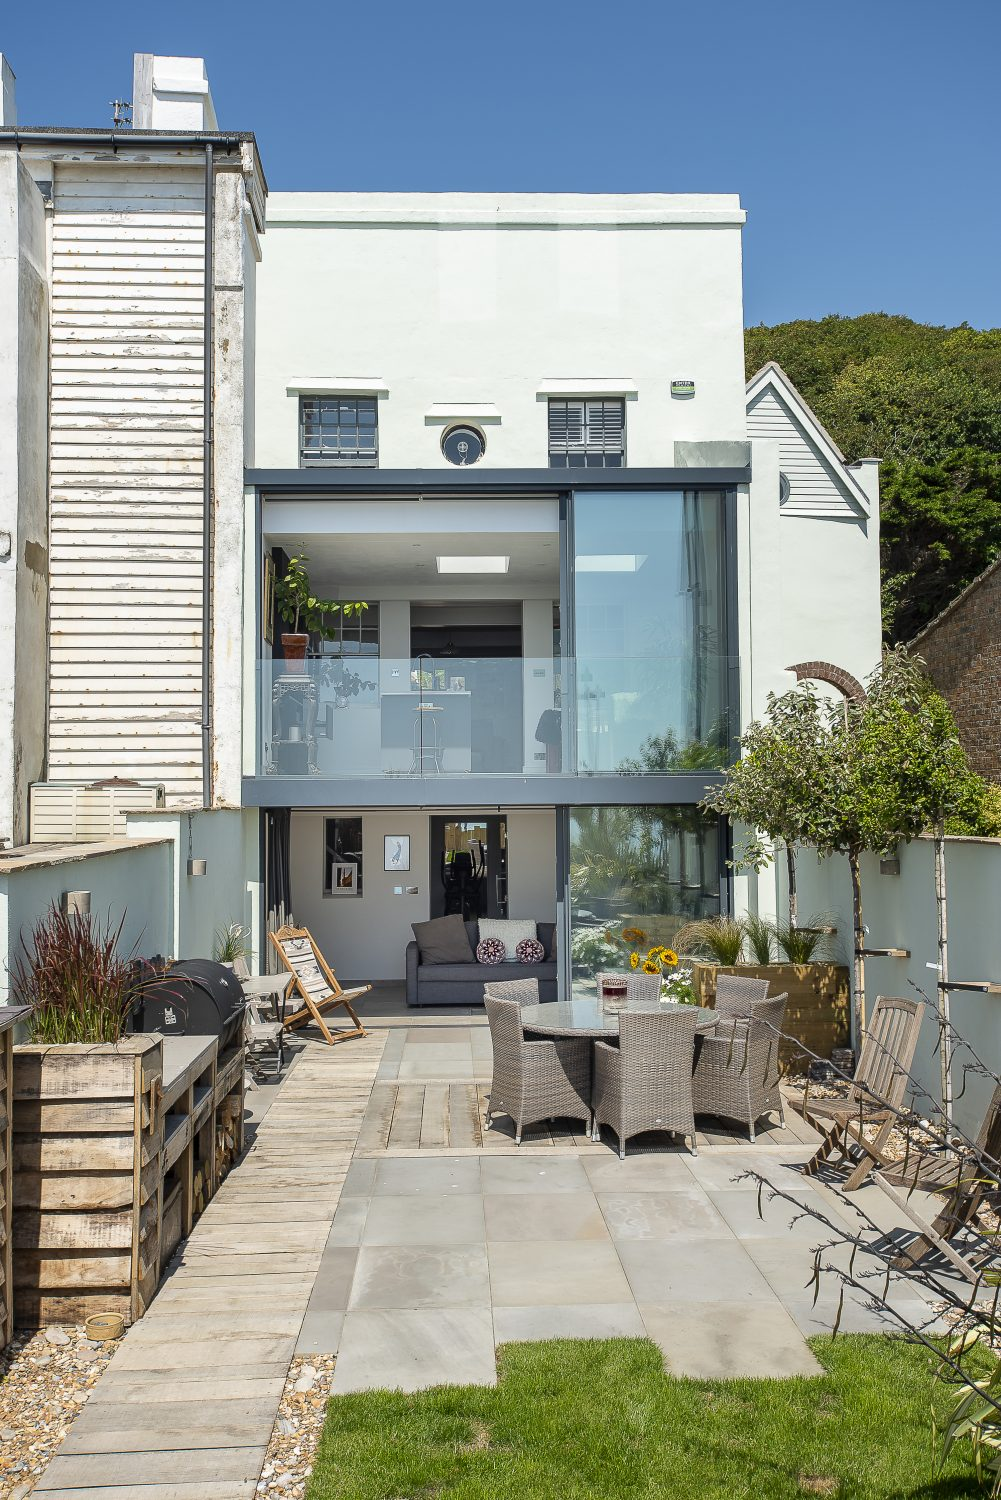 The precarious sun rooms were demolished and replaced with a contemporary double height extension, complete with virtually seamless sliding doors and a sheer glass balustrade